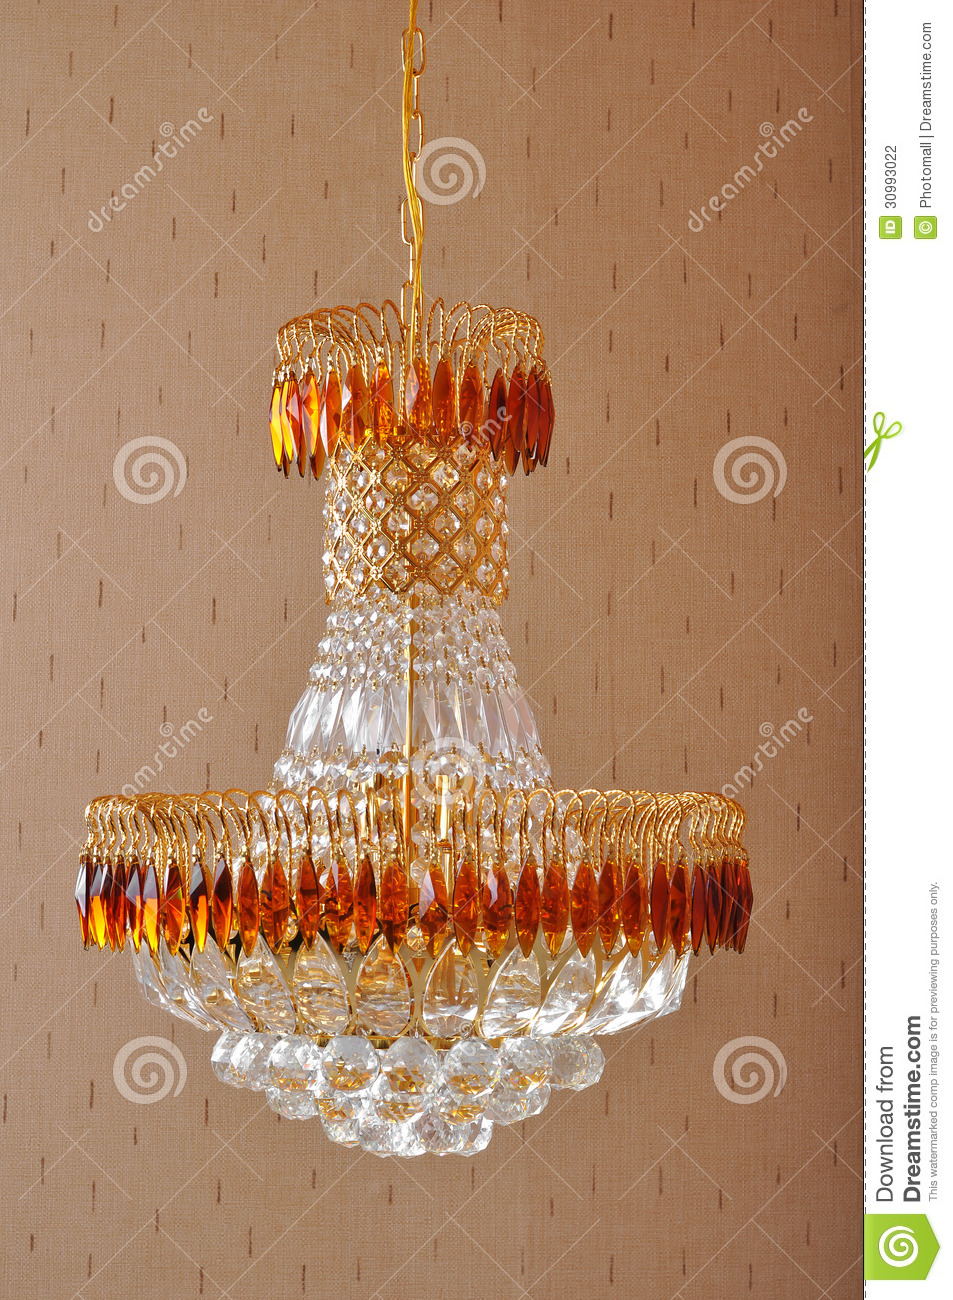 Crystal Chandelier lighting, Luxurious crystal droplight , Home Furnishing decoration , Beautiful and bright Lighting design